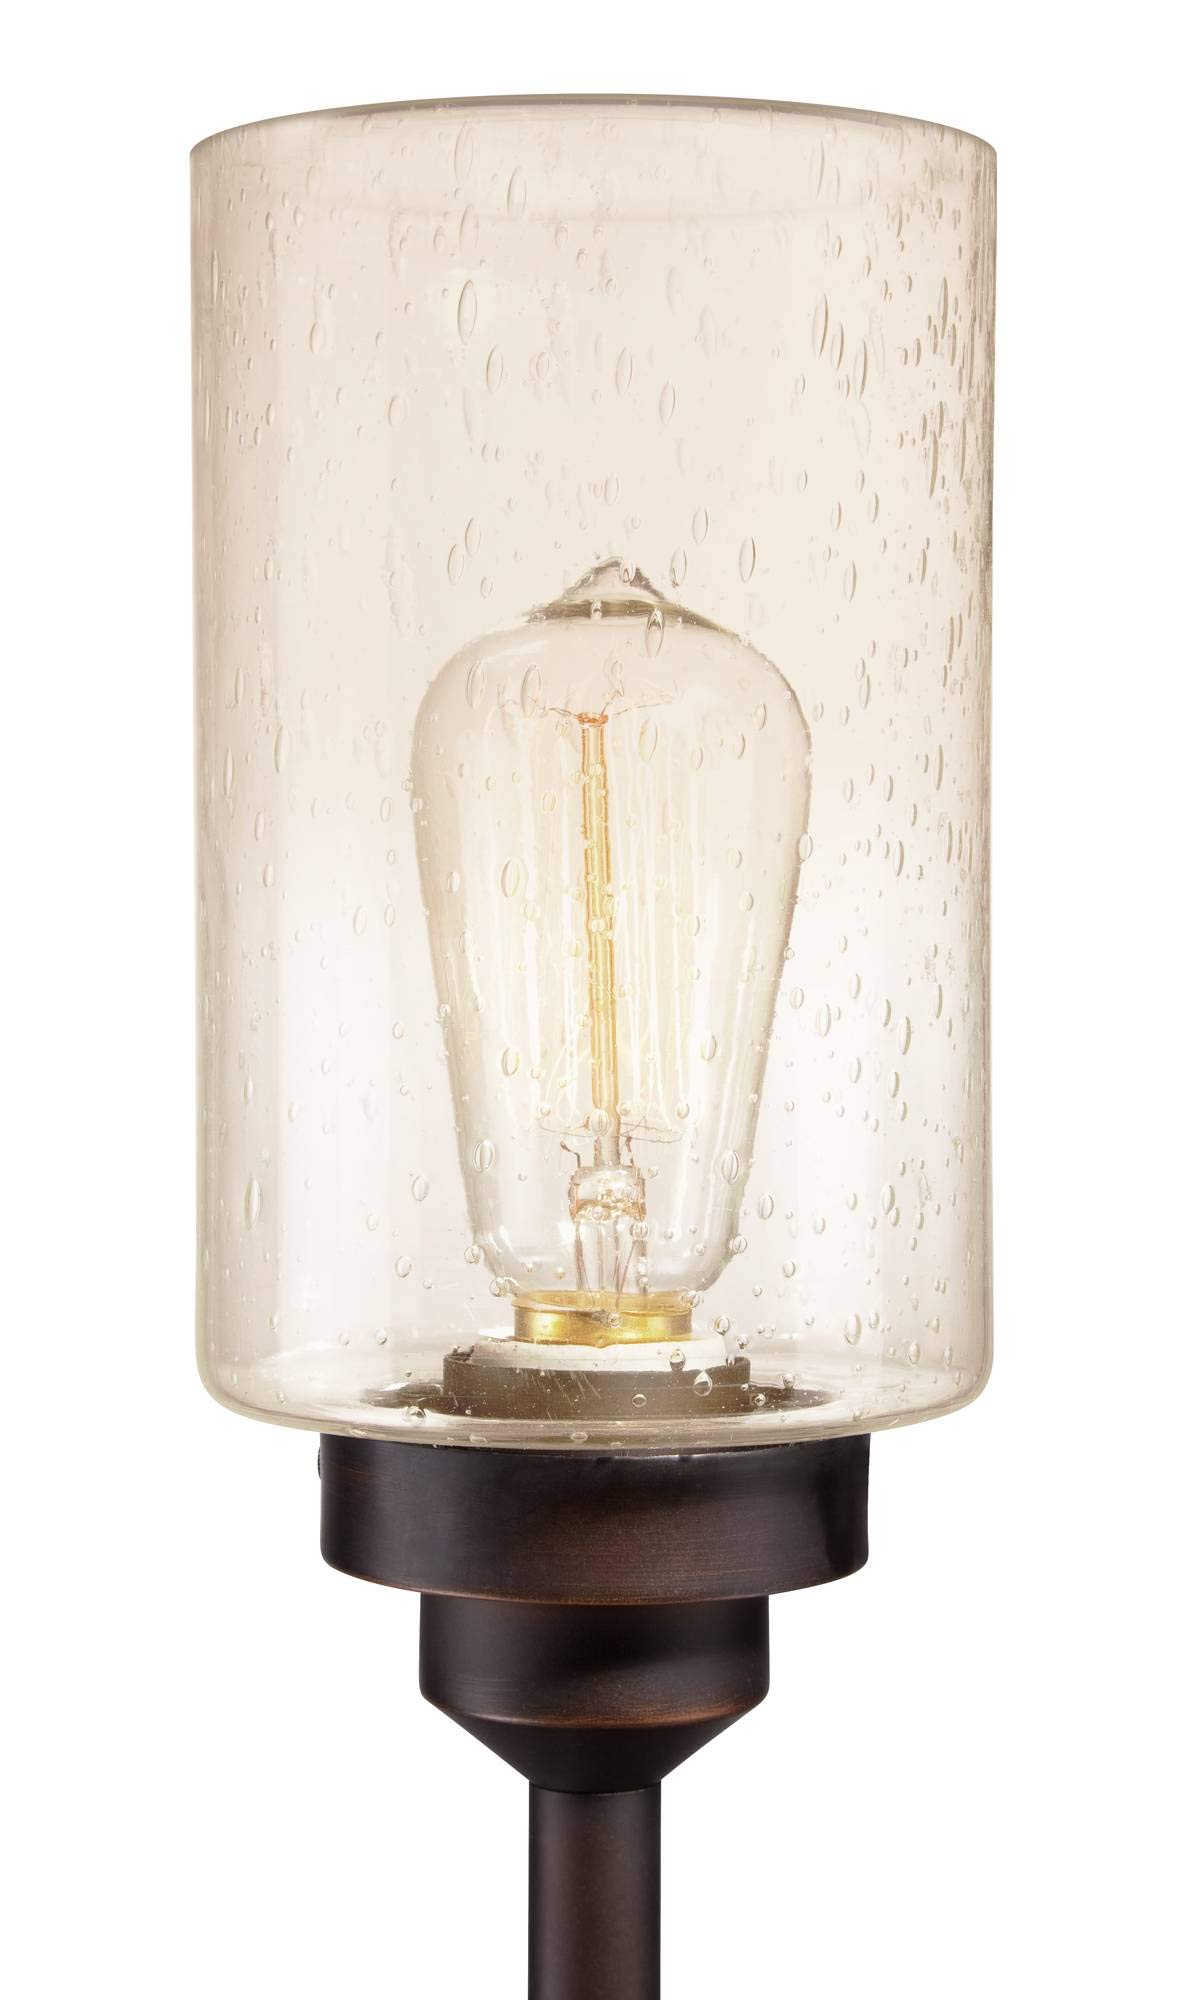 Libby Vintage Floor Lamp 3-Light Oiled Bronze Amber Seedy Glass Dimmable LED Edison Bulb for Living Room Bedroom - Franklin Iron Works by Franklin Iron Works (Image #4)